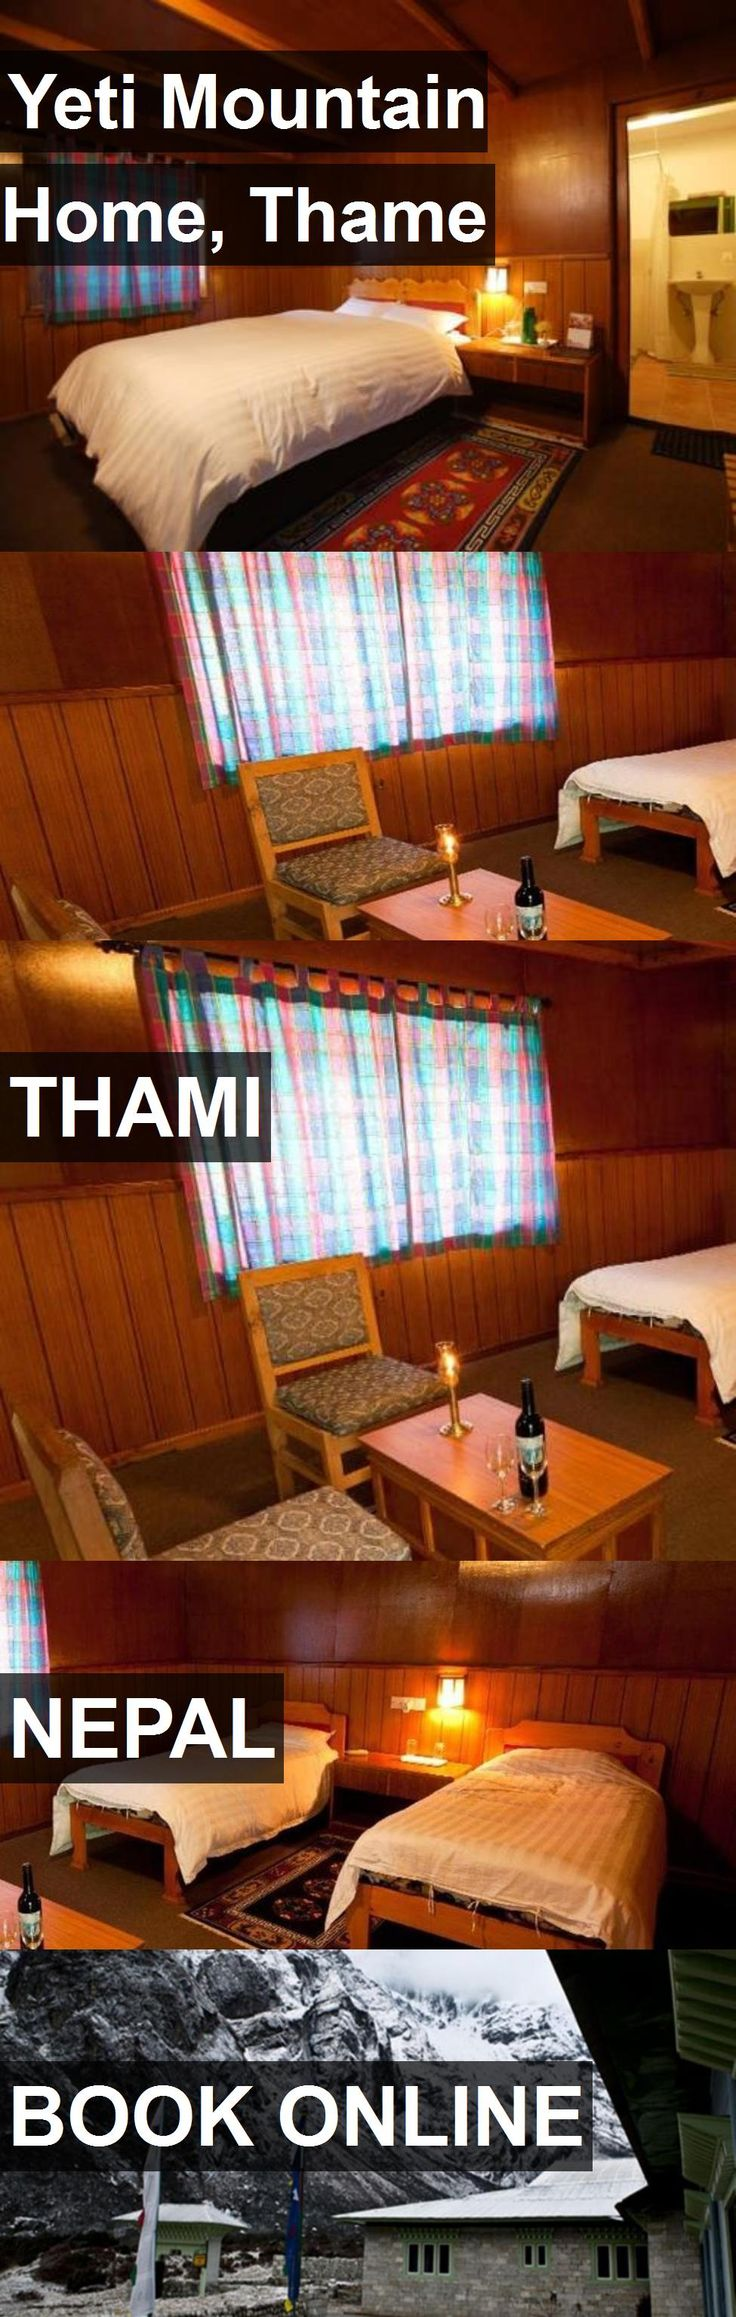 Hotel Yeti Mountain Home, Thame in Thami, Nepal. For more information, photos, reviews and best prices please follow the link. #Nepal #Thami #YetiMountainHome,Thame #hotel #travel #vacation